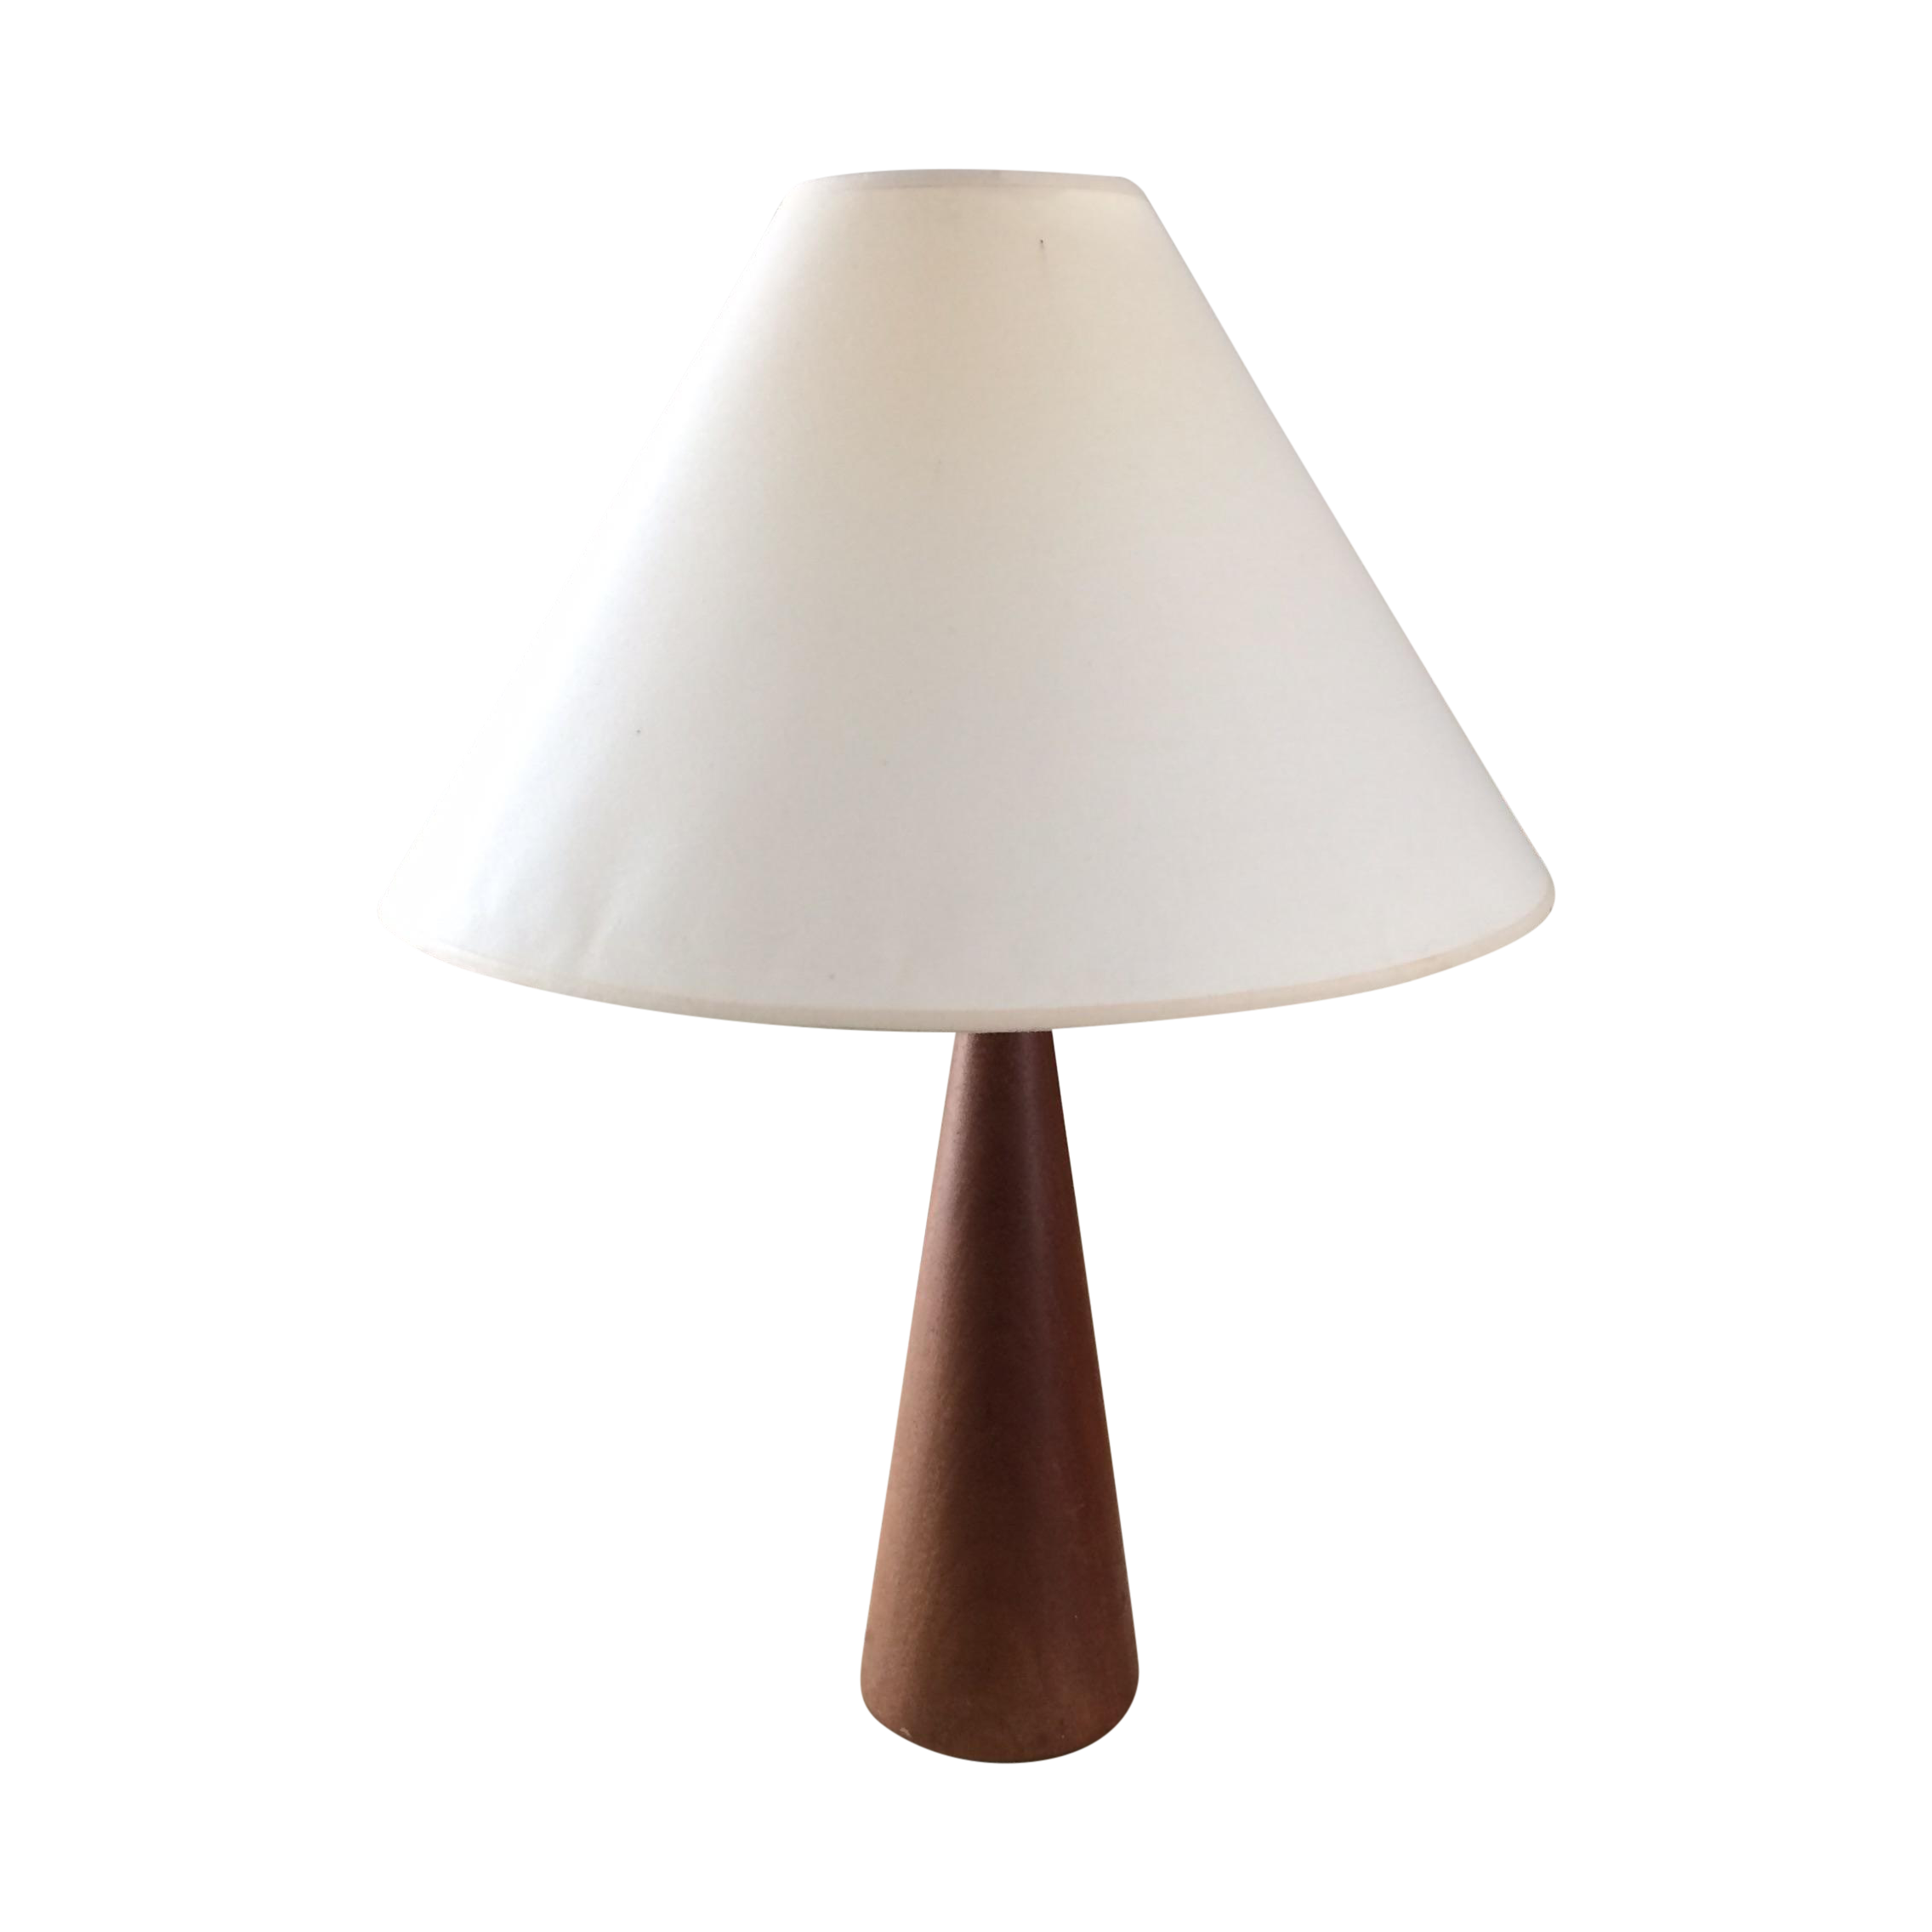 Vintage Danish Modern Teak Table Lamp